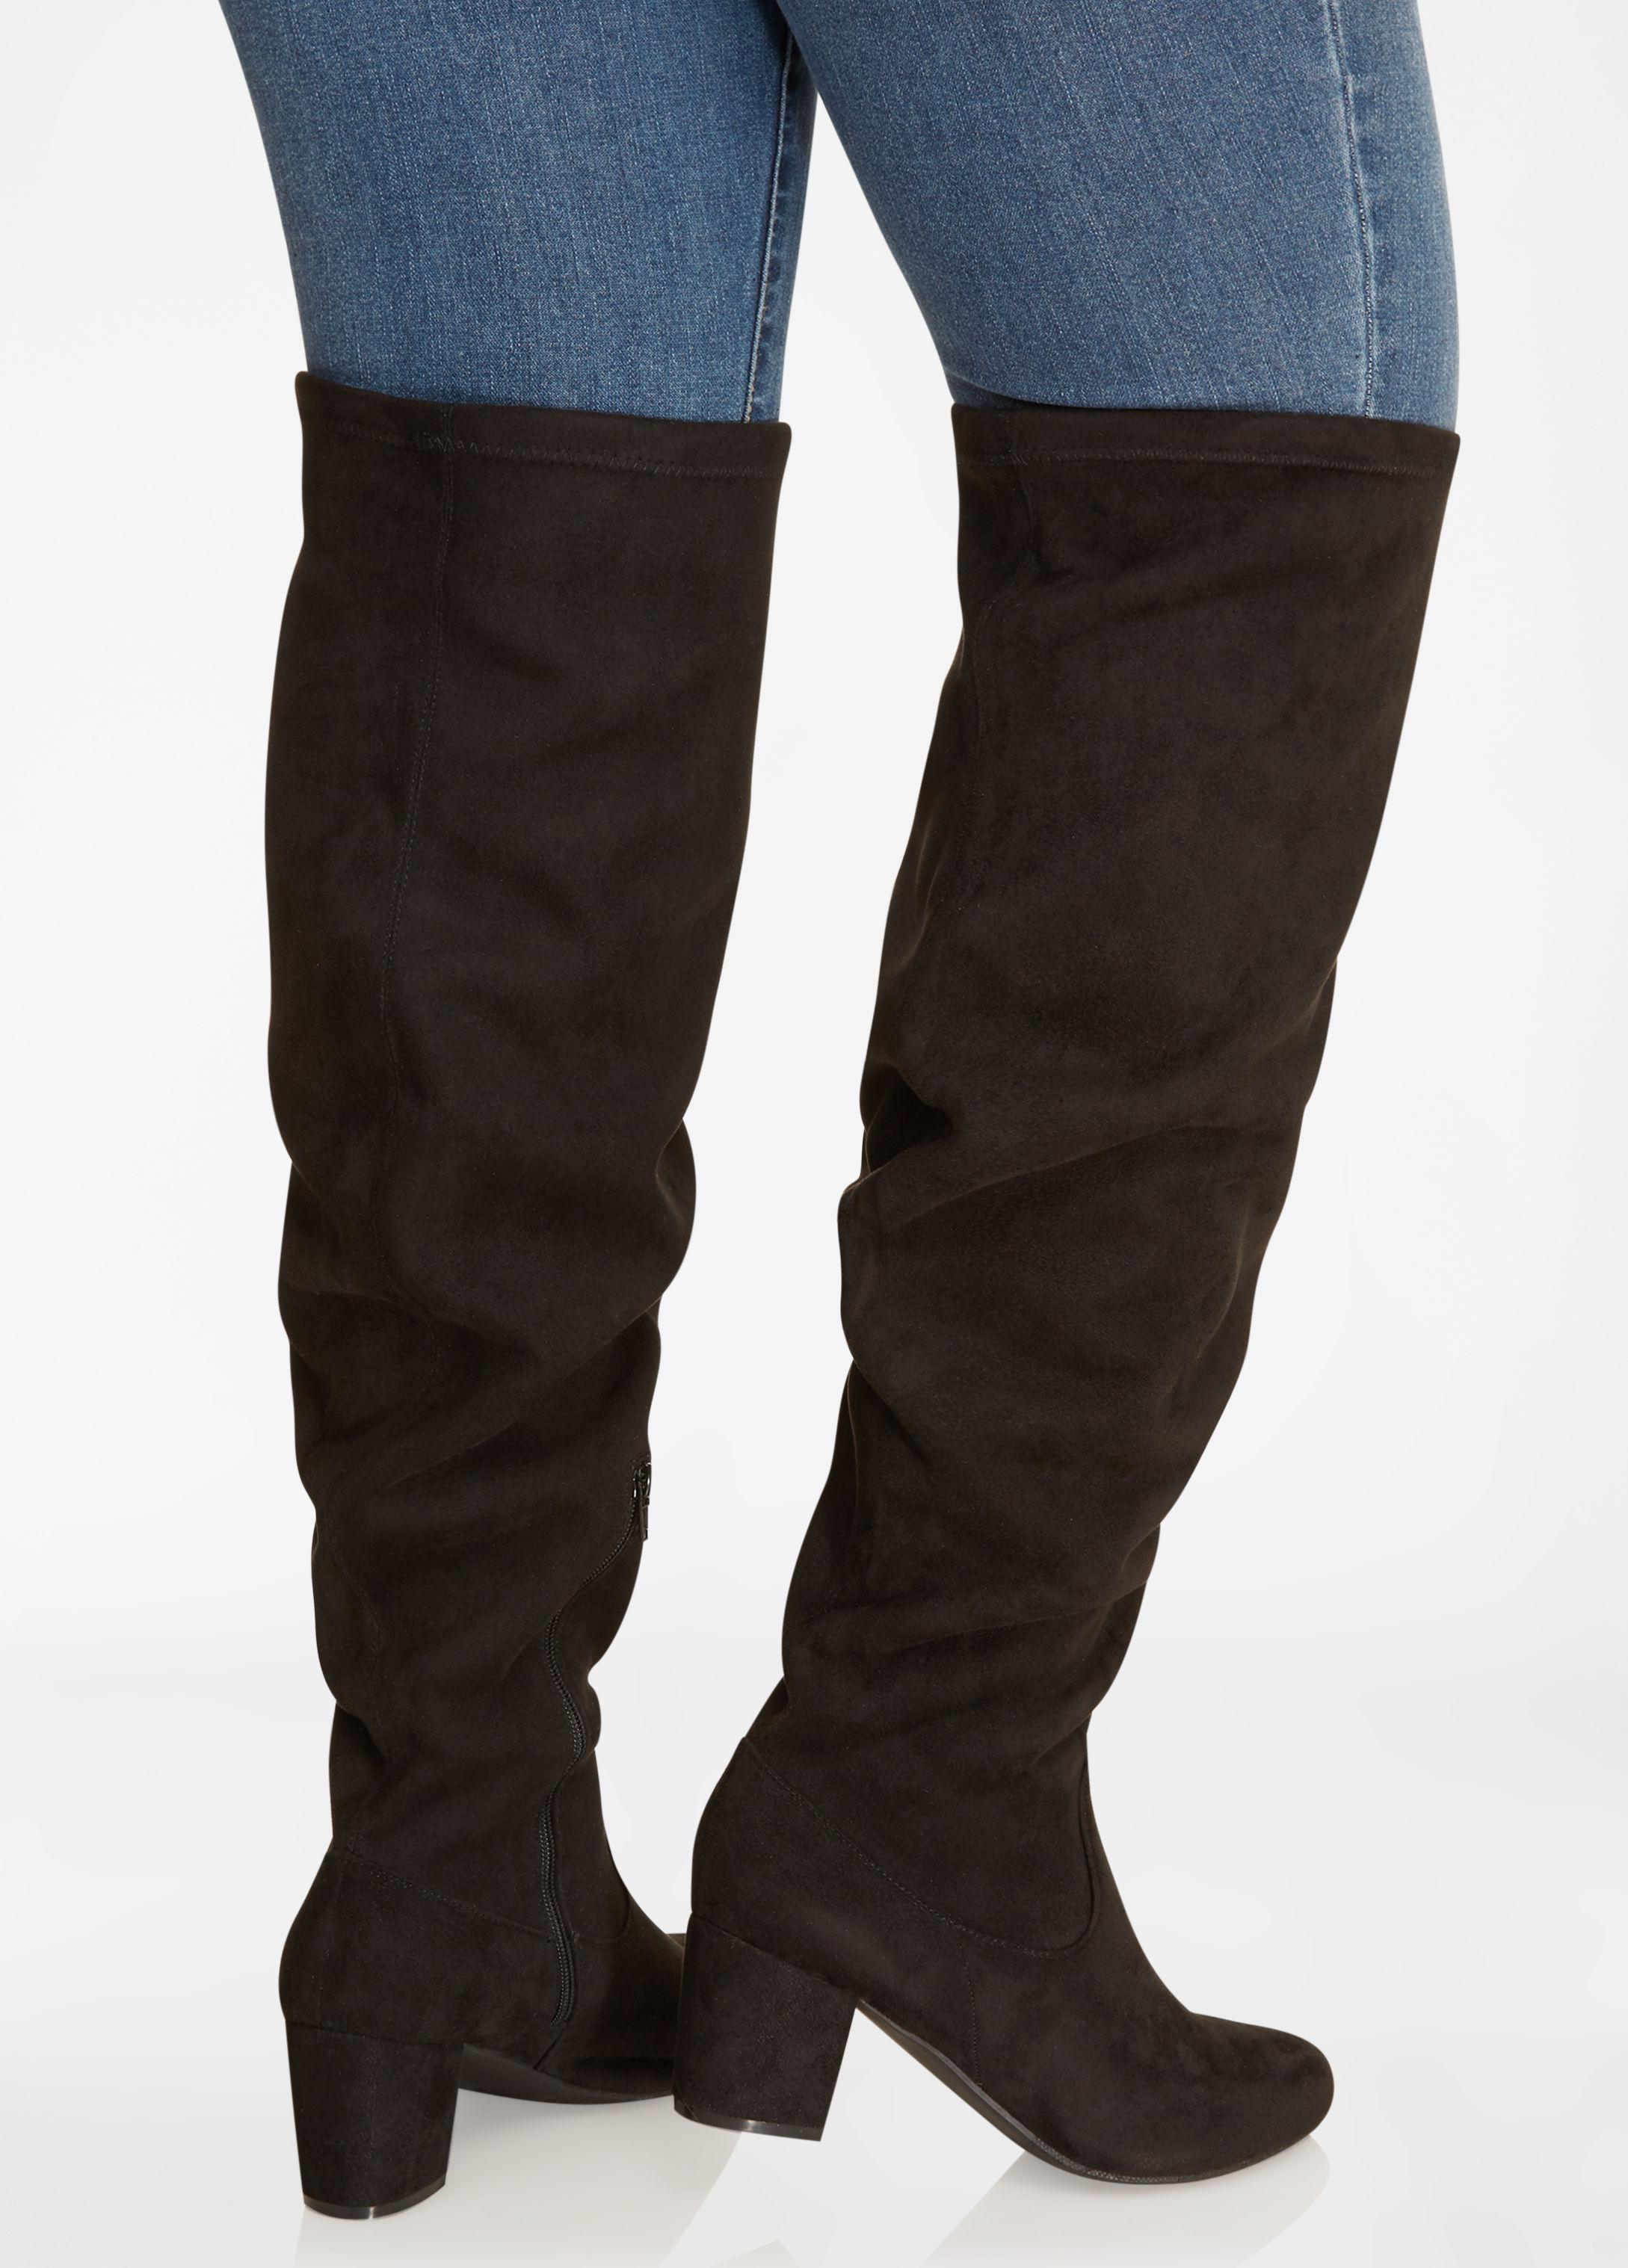 63247b5138e Ashley Stewart Over-the-knee Faux Suede Boots - Wide Width - Wide ...